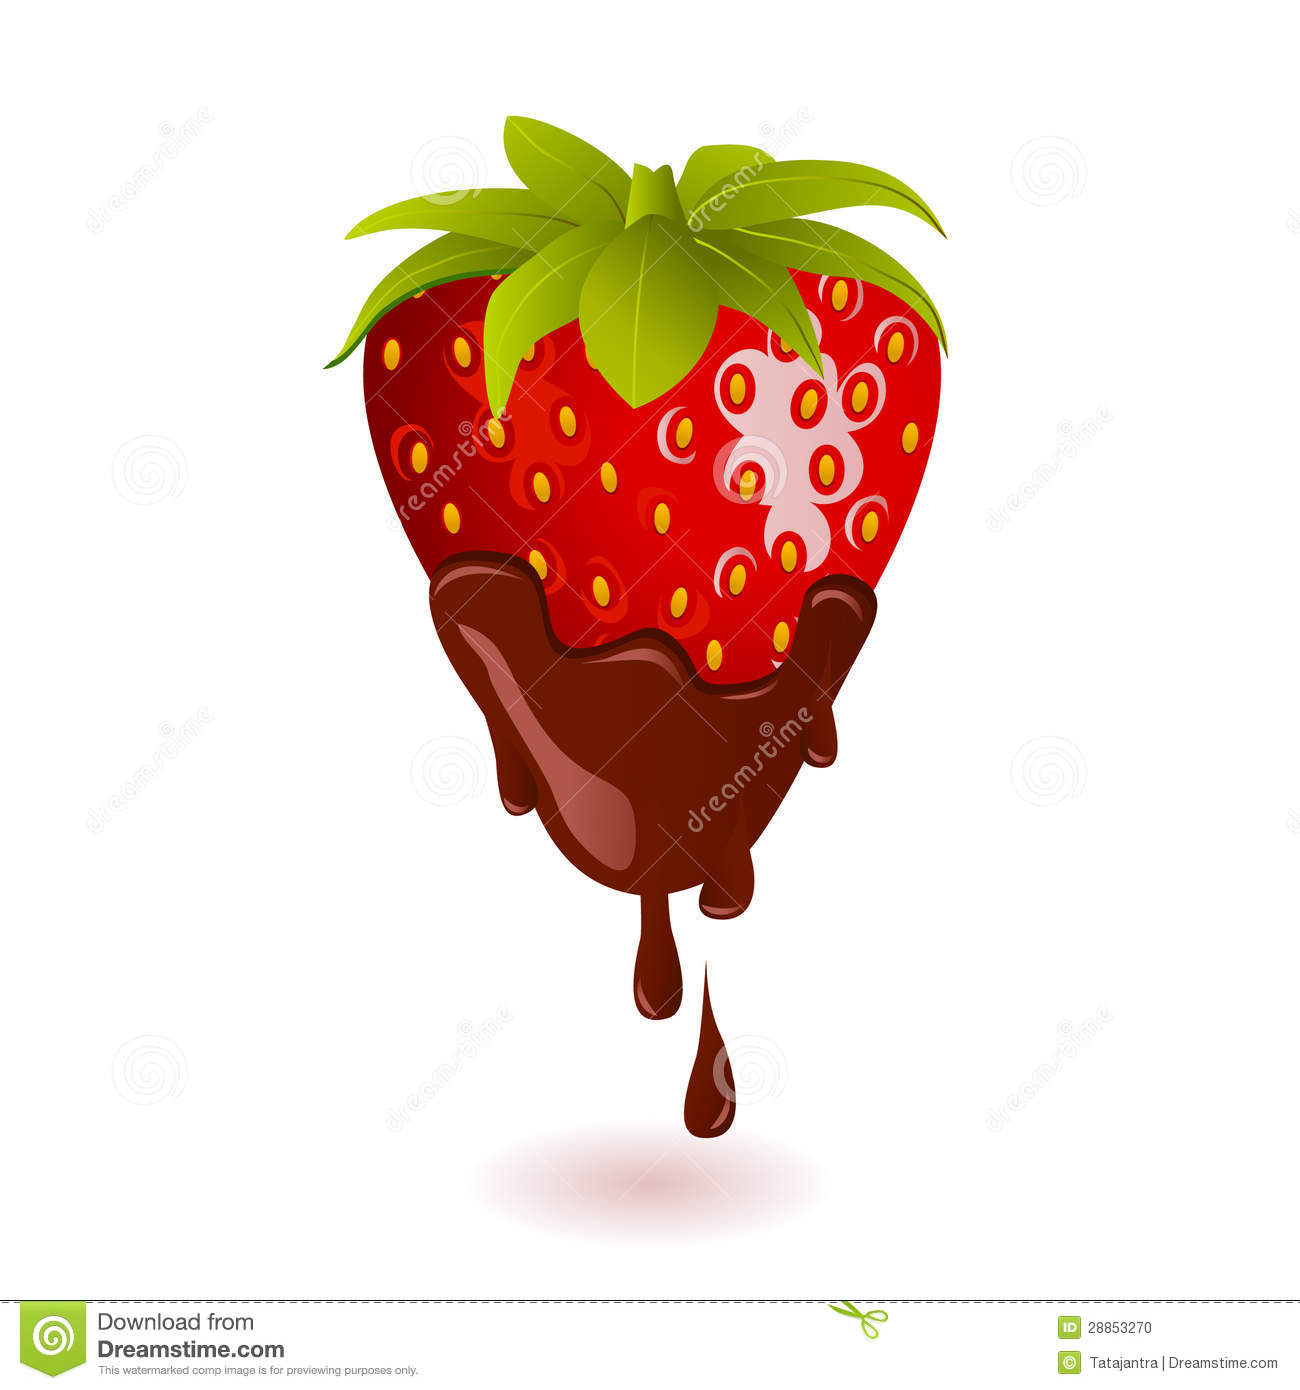 Chocolate Dipped Strawberry on white background -vector illustration Cartoon Chocolate Covered Strawberry